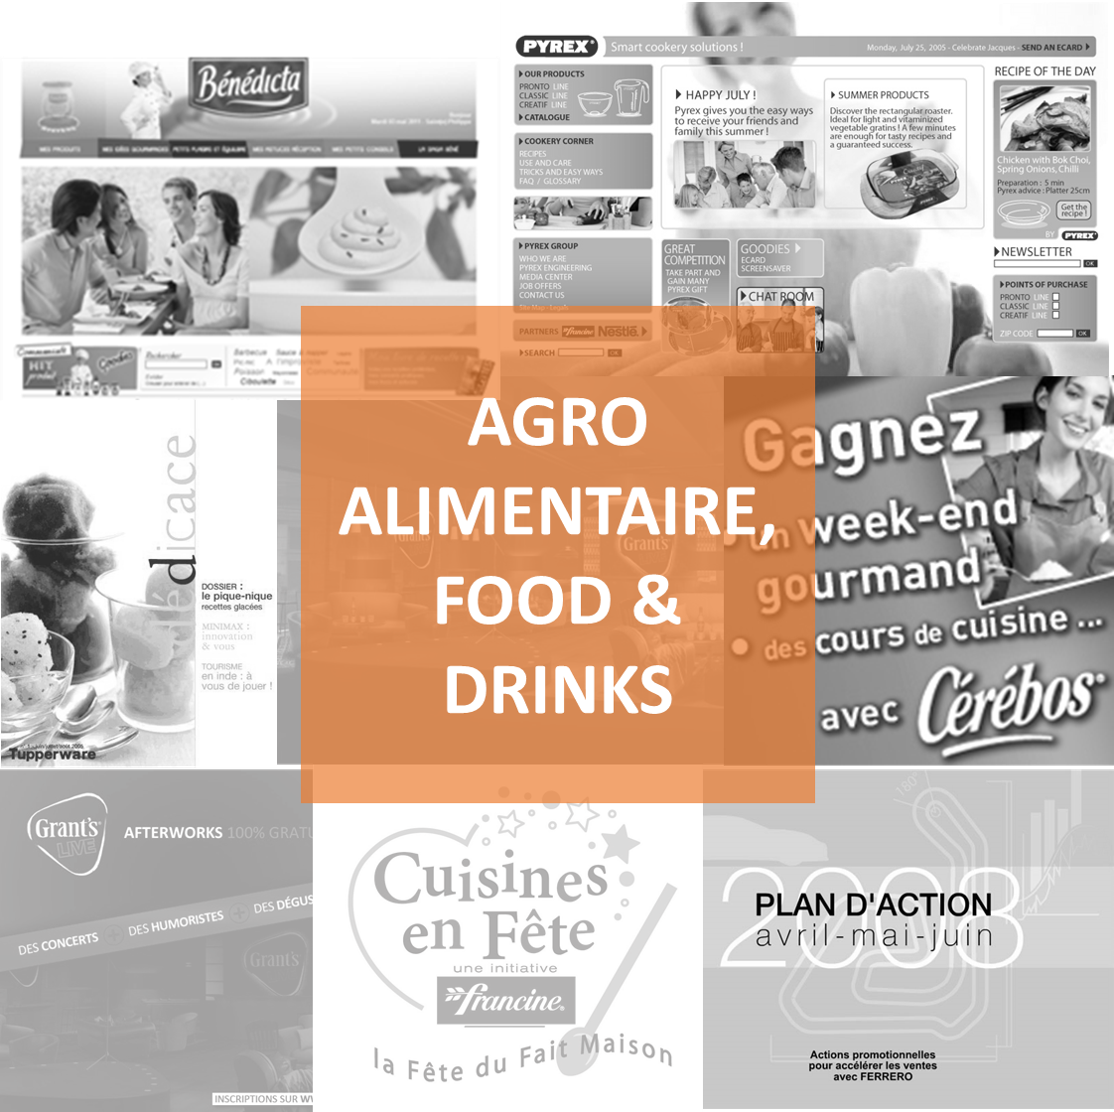 Agroalimentaire, food and drinks